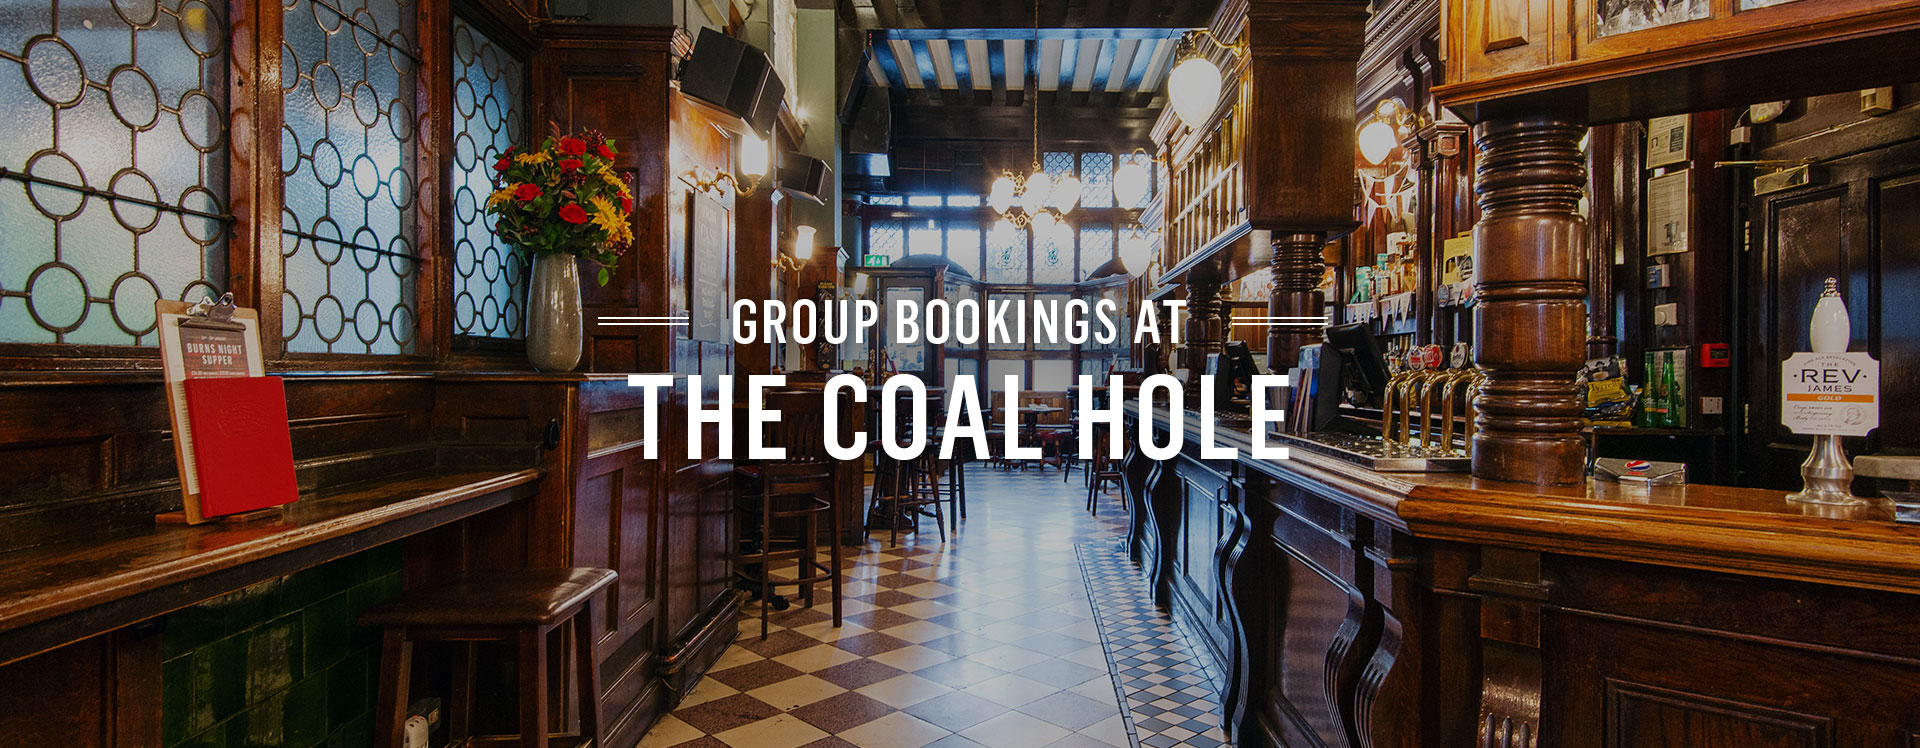 Group Bookings at The Coal Hole